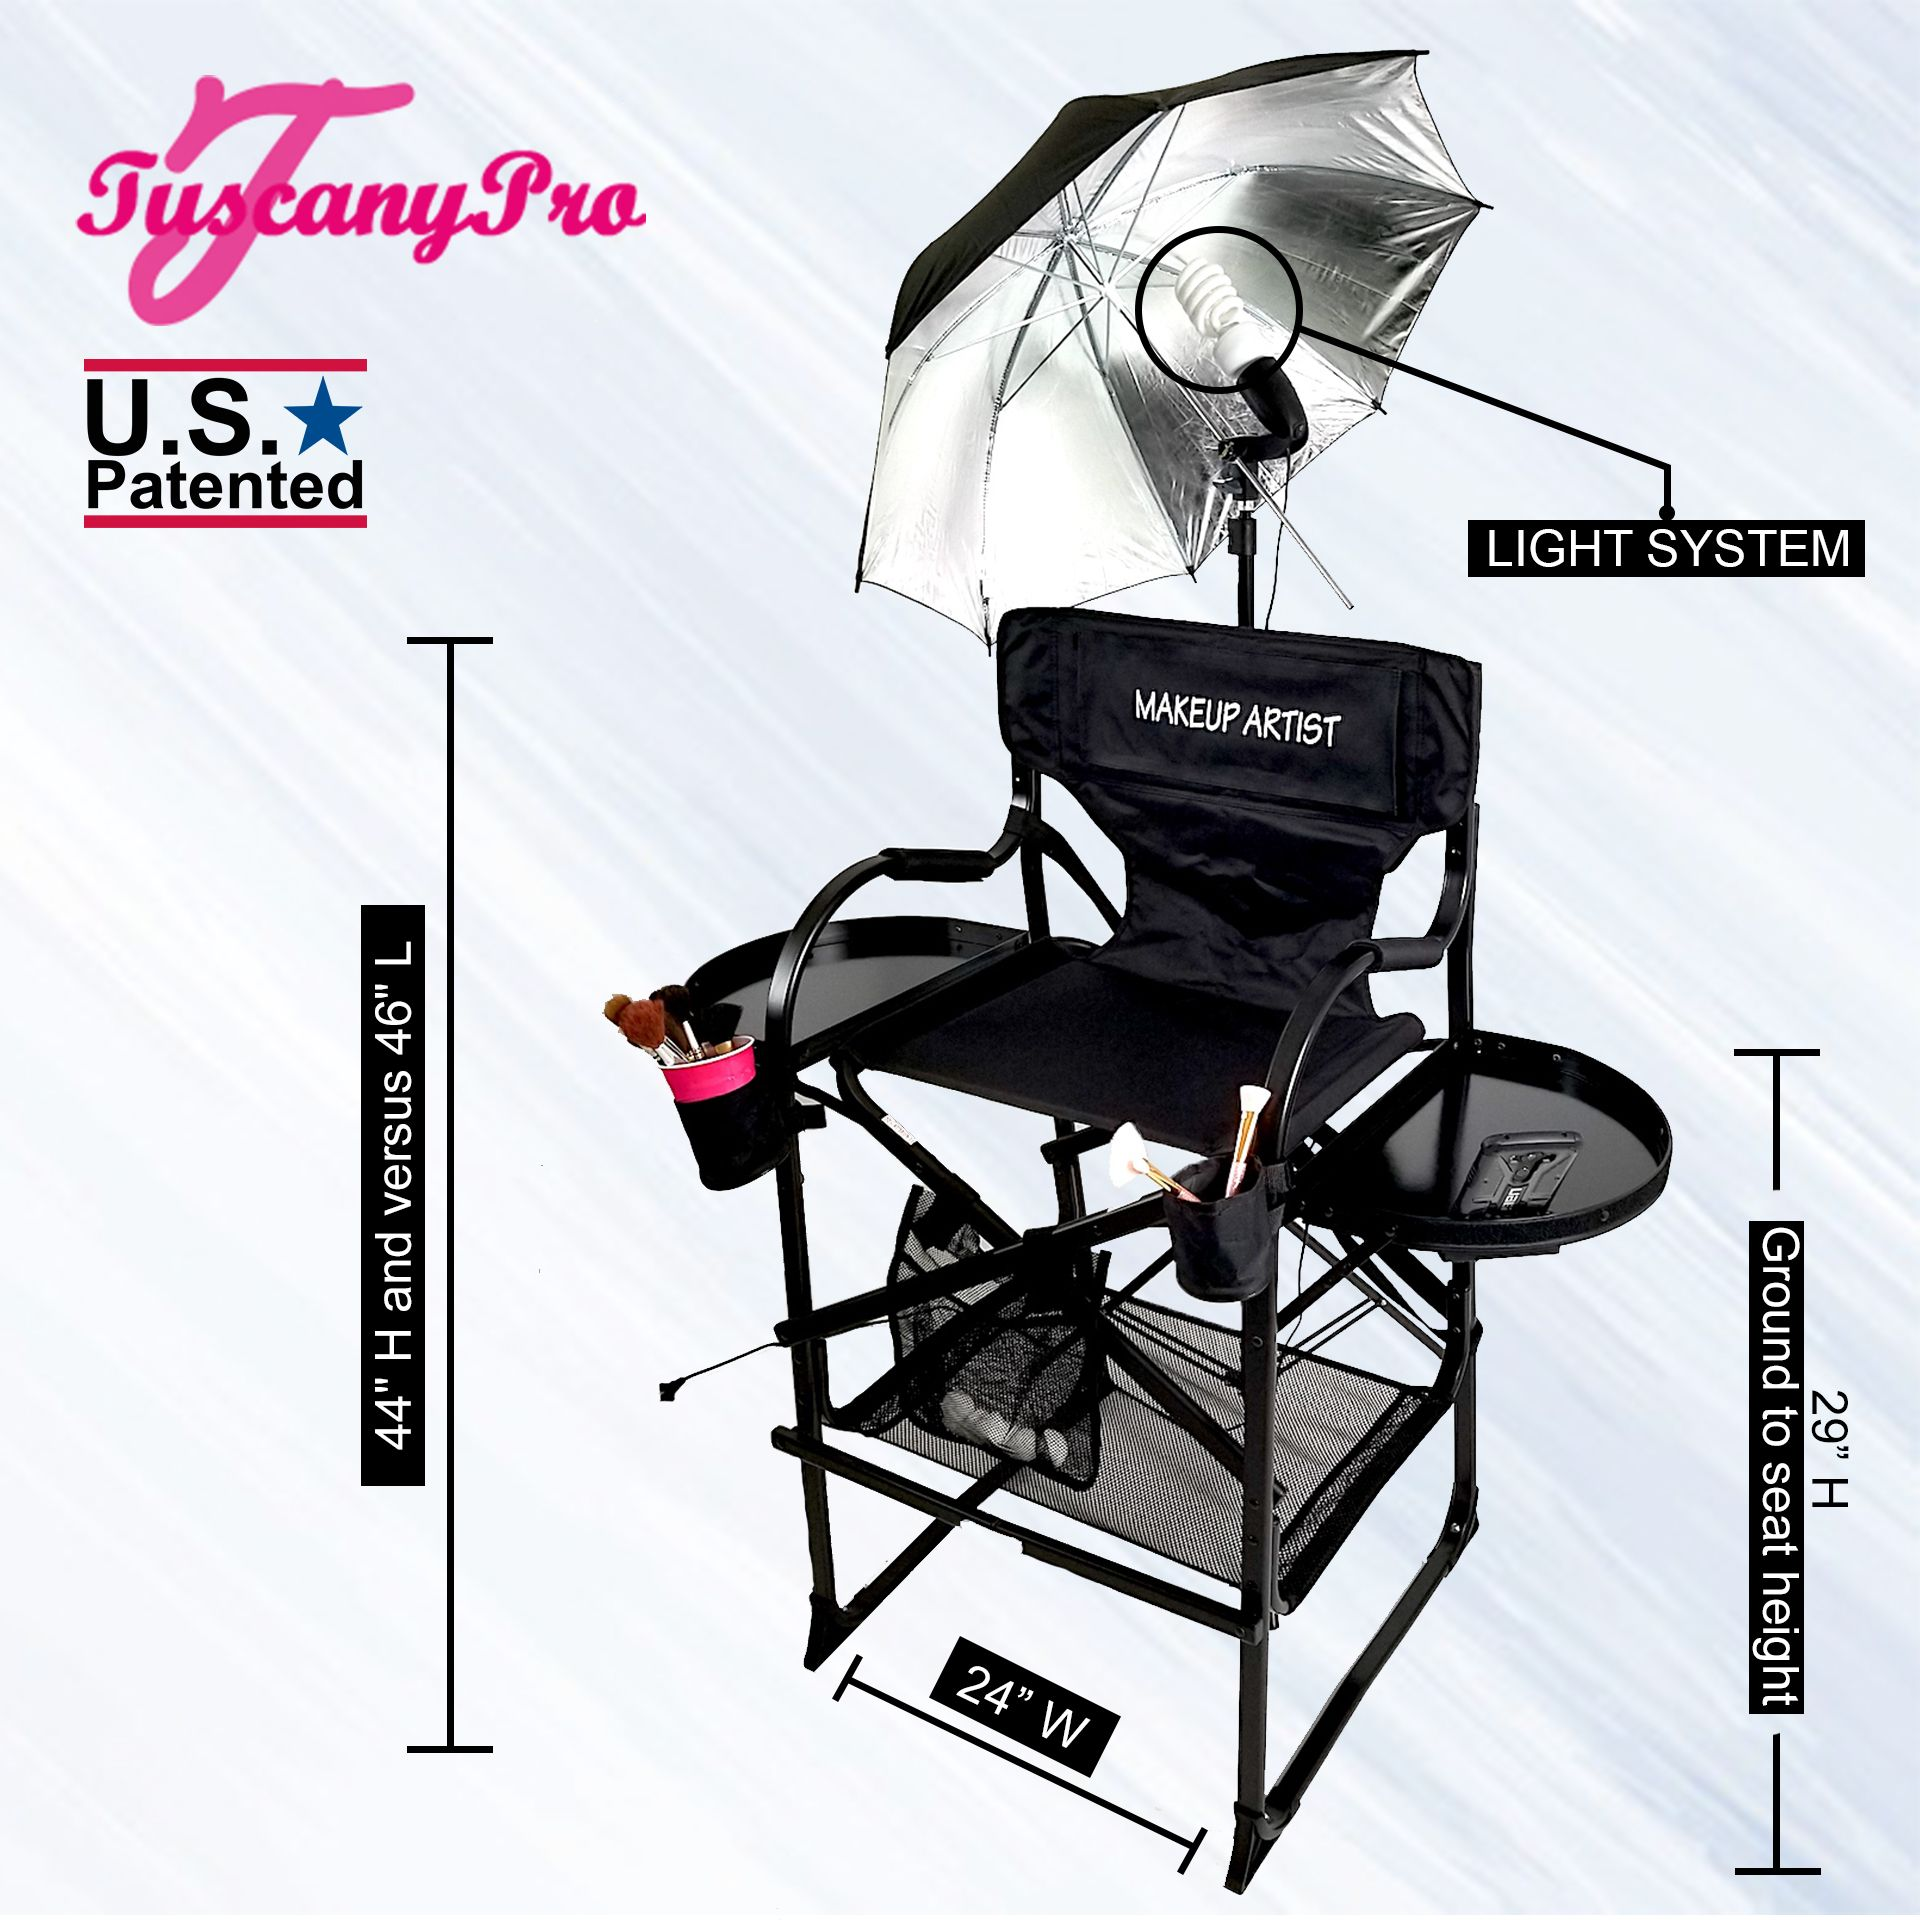 2.	TUSCANY PRO TALL MAKEUP ARTIST PORTABLE CHAIR